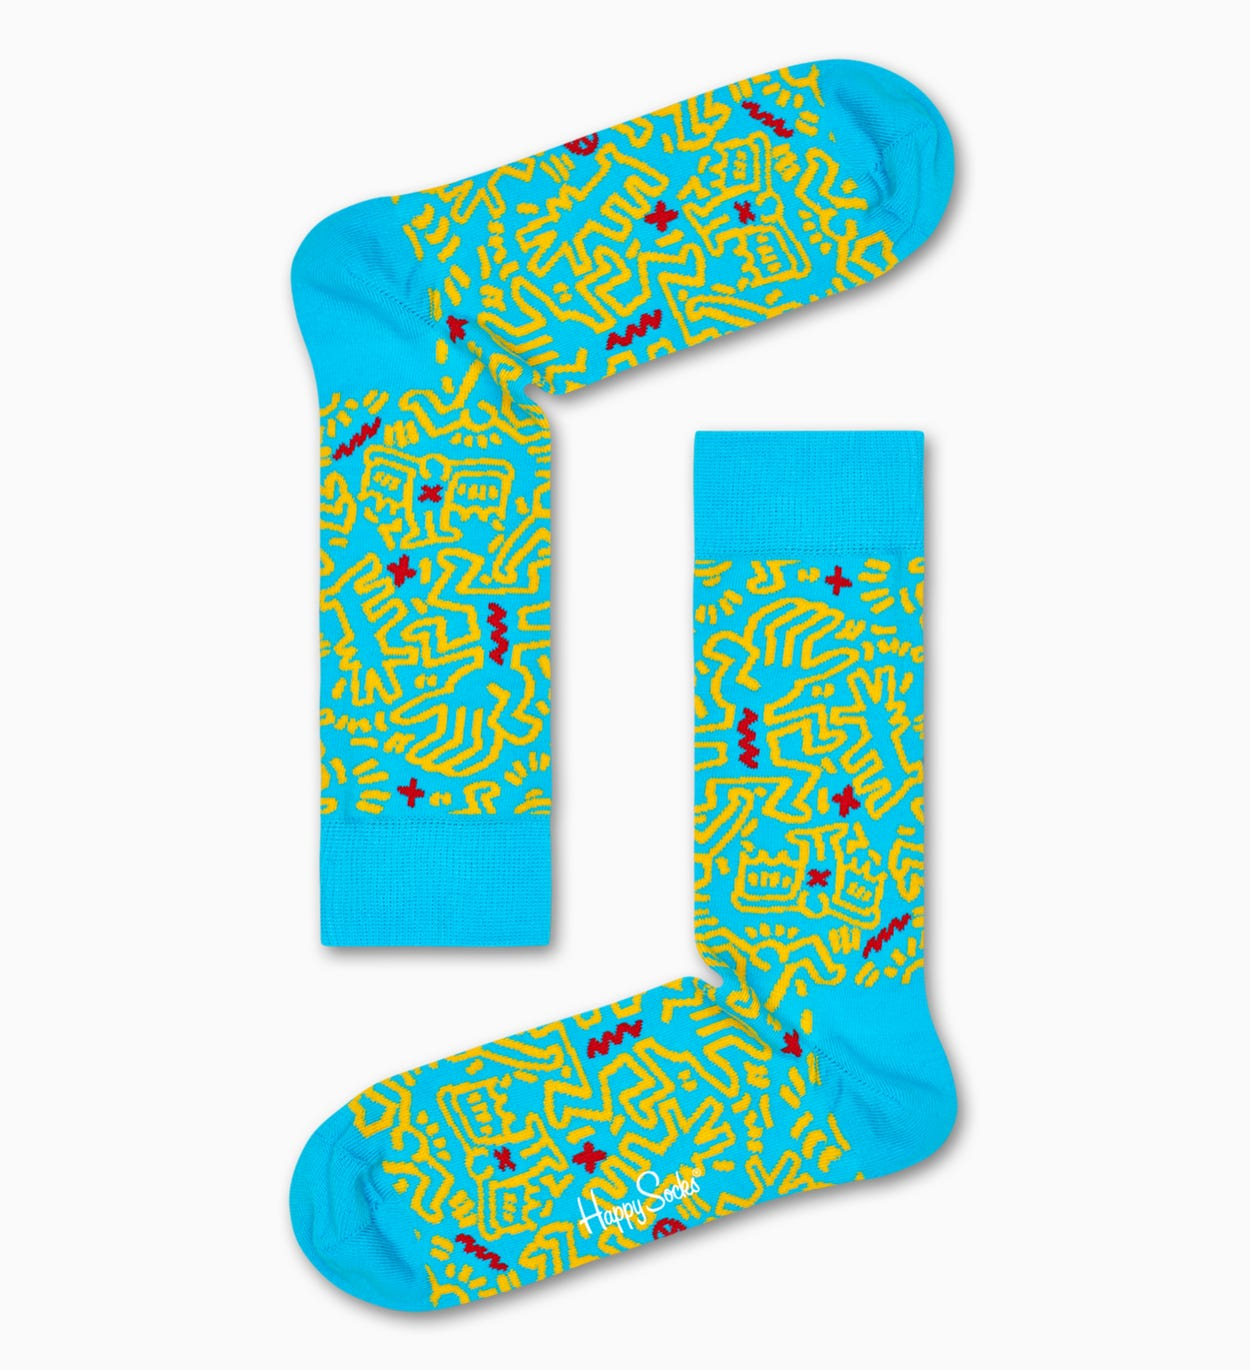 Keith Haring All Over Sock